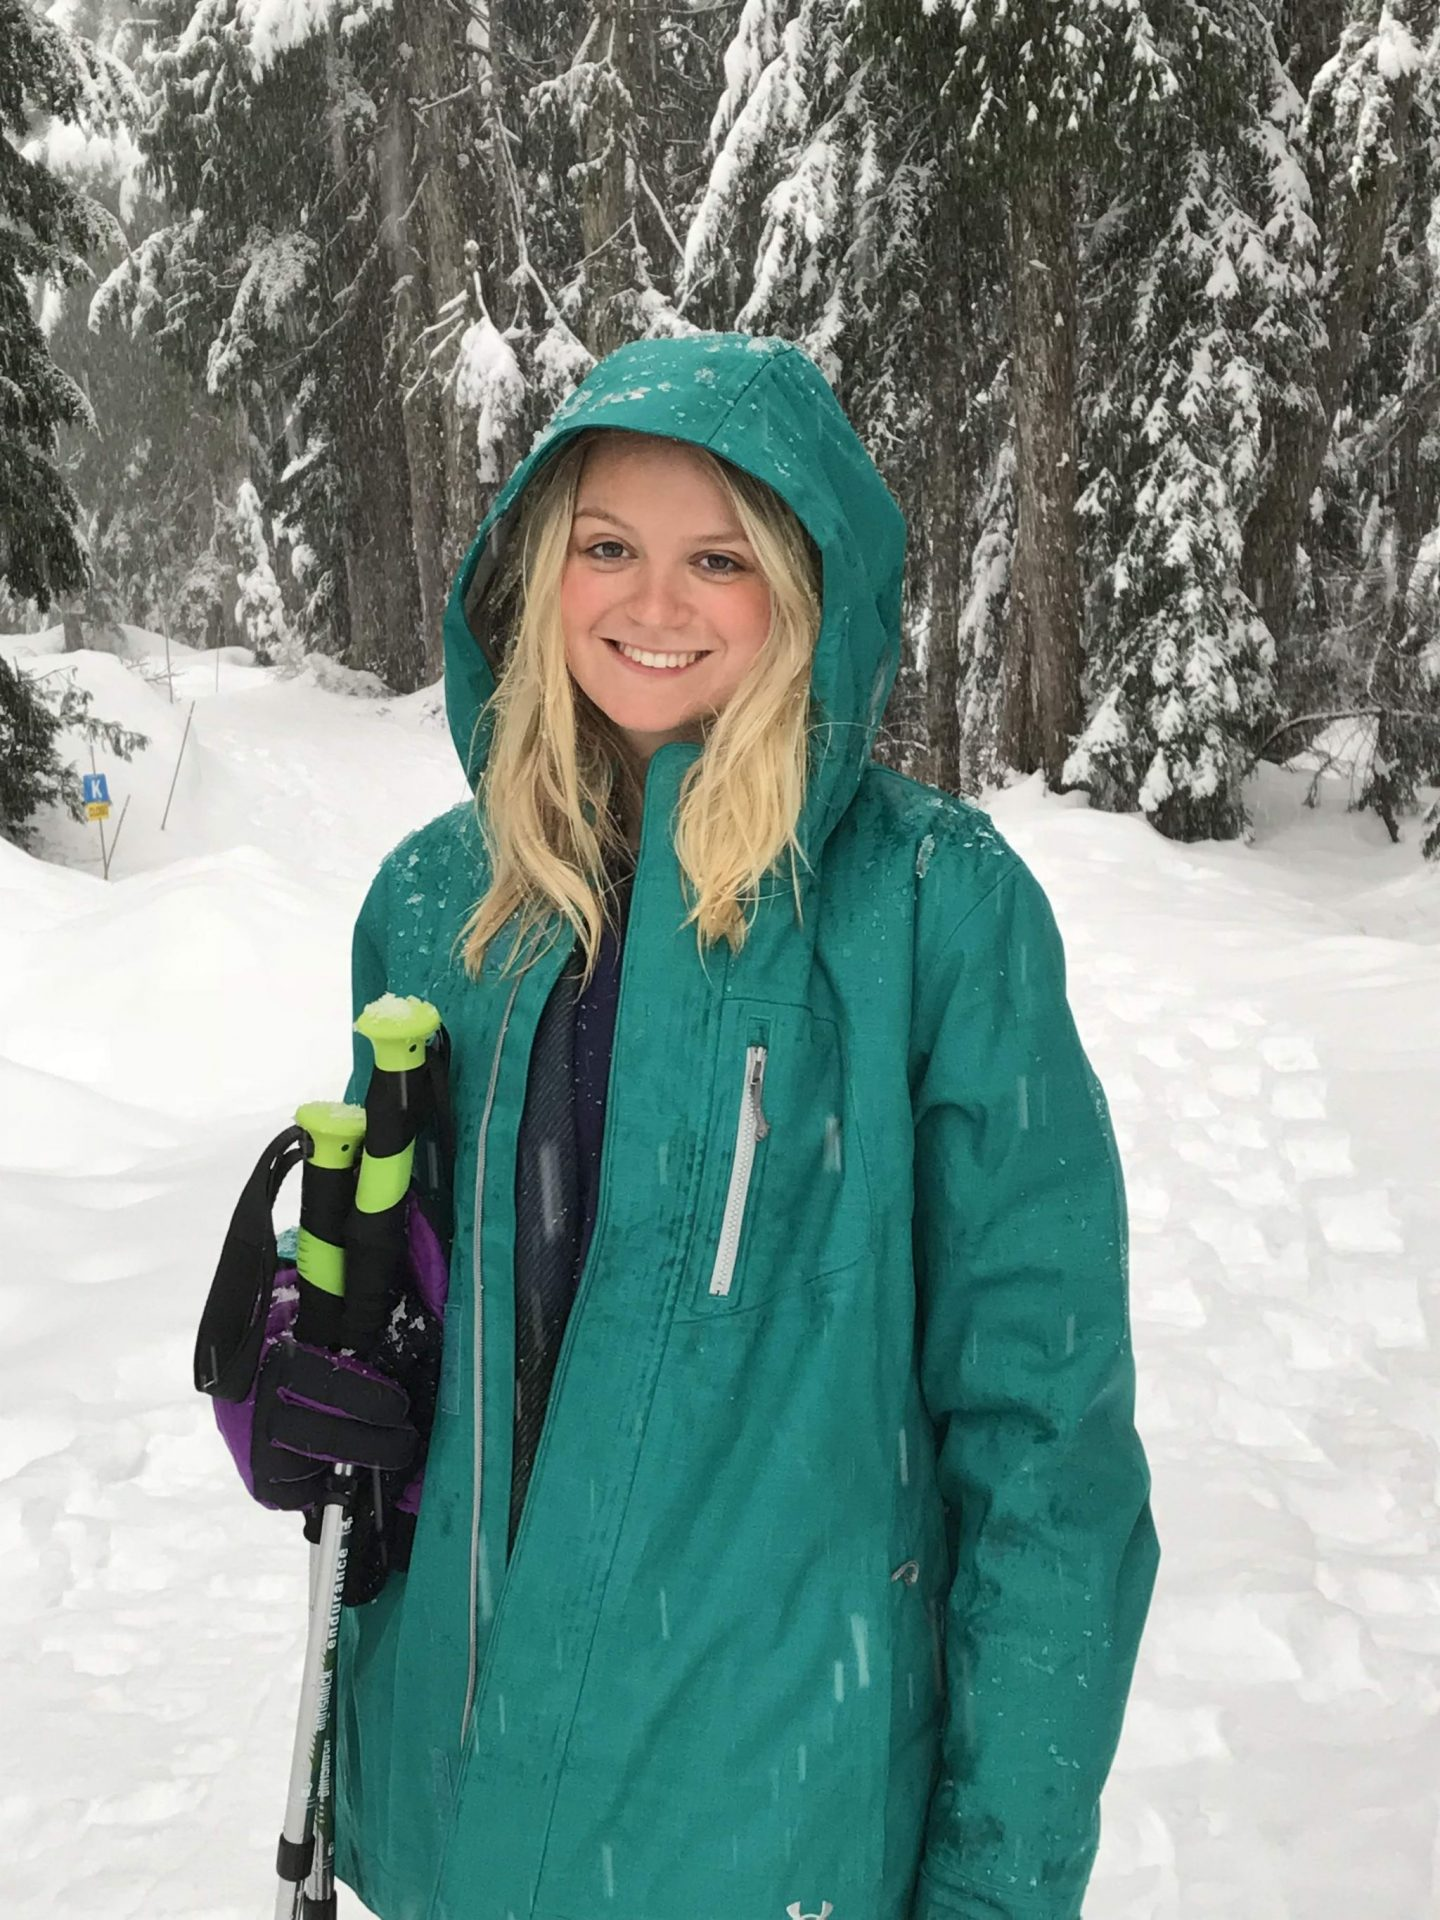 Laura in a winter wonderland on Mount Seymour, Vancouver